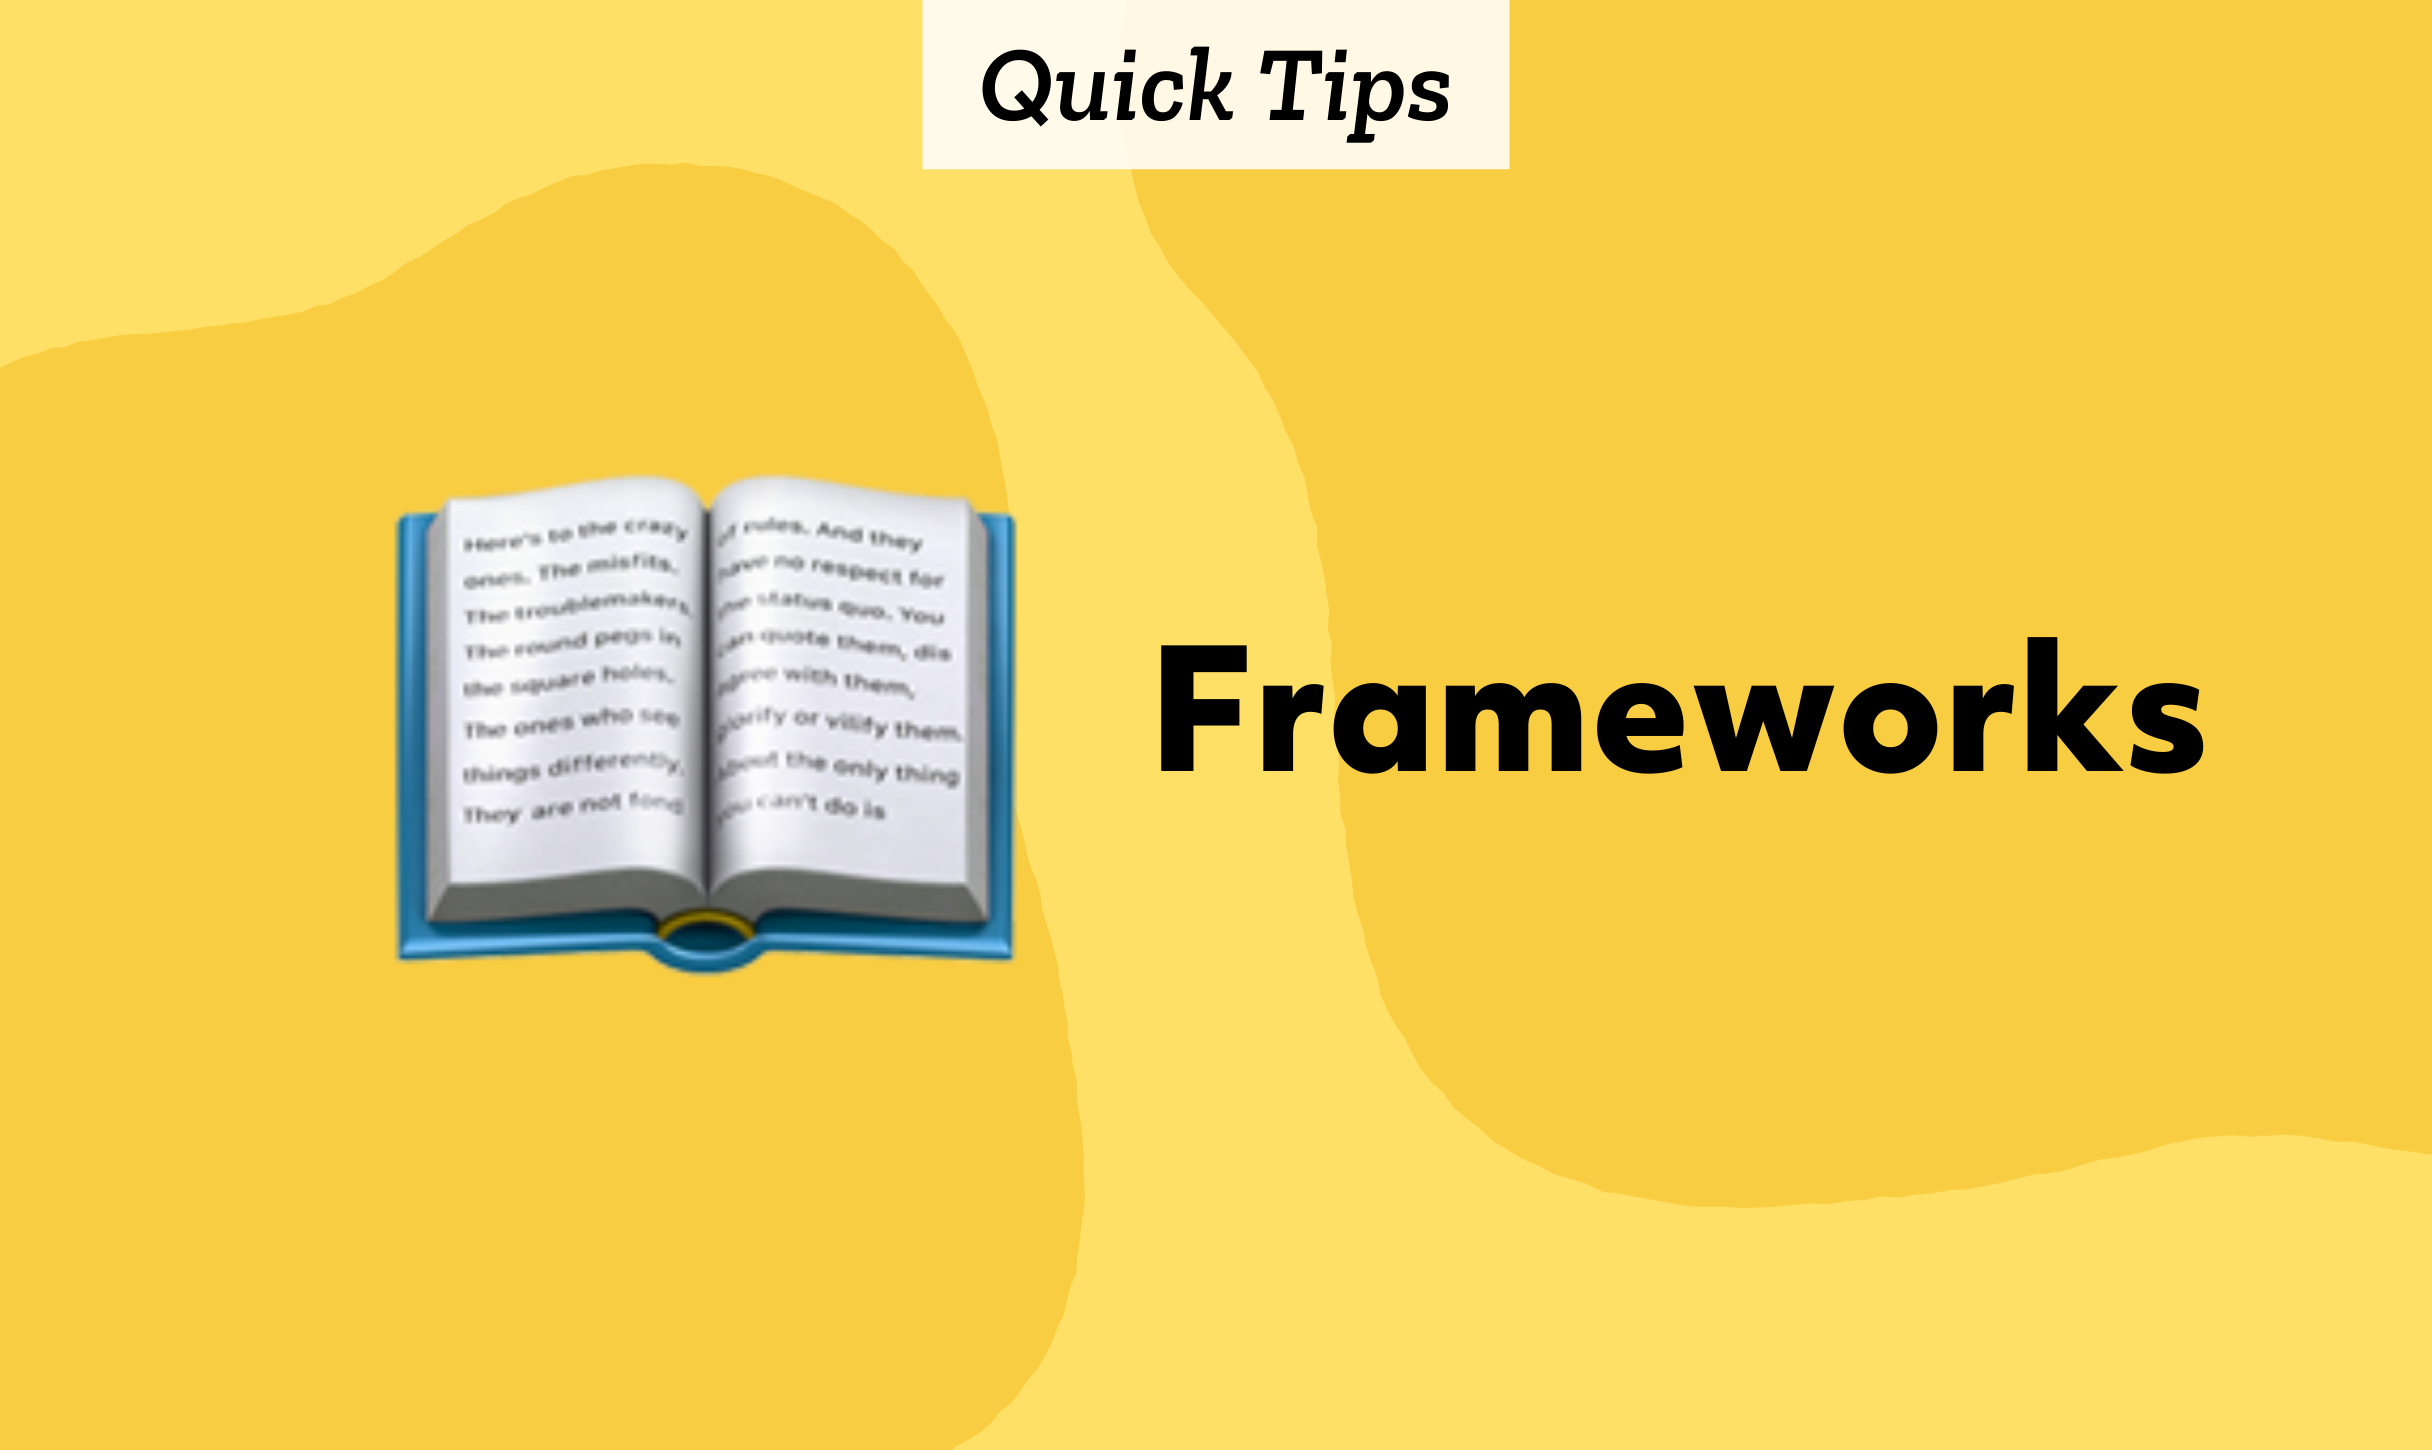 Quick Tips: Frameworks